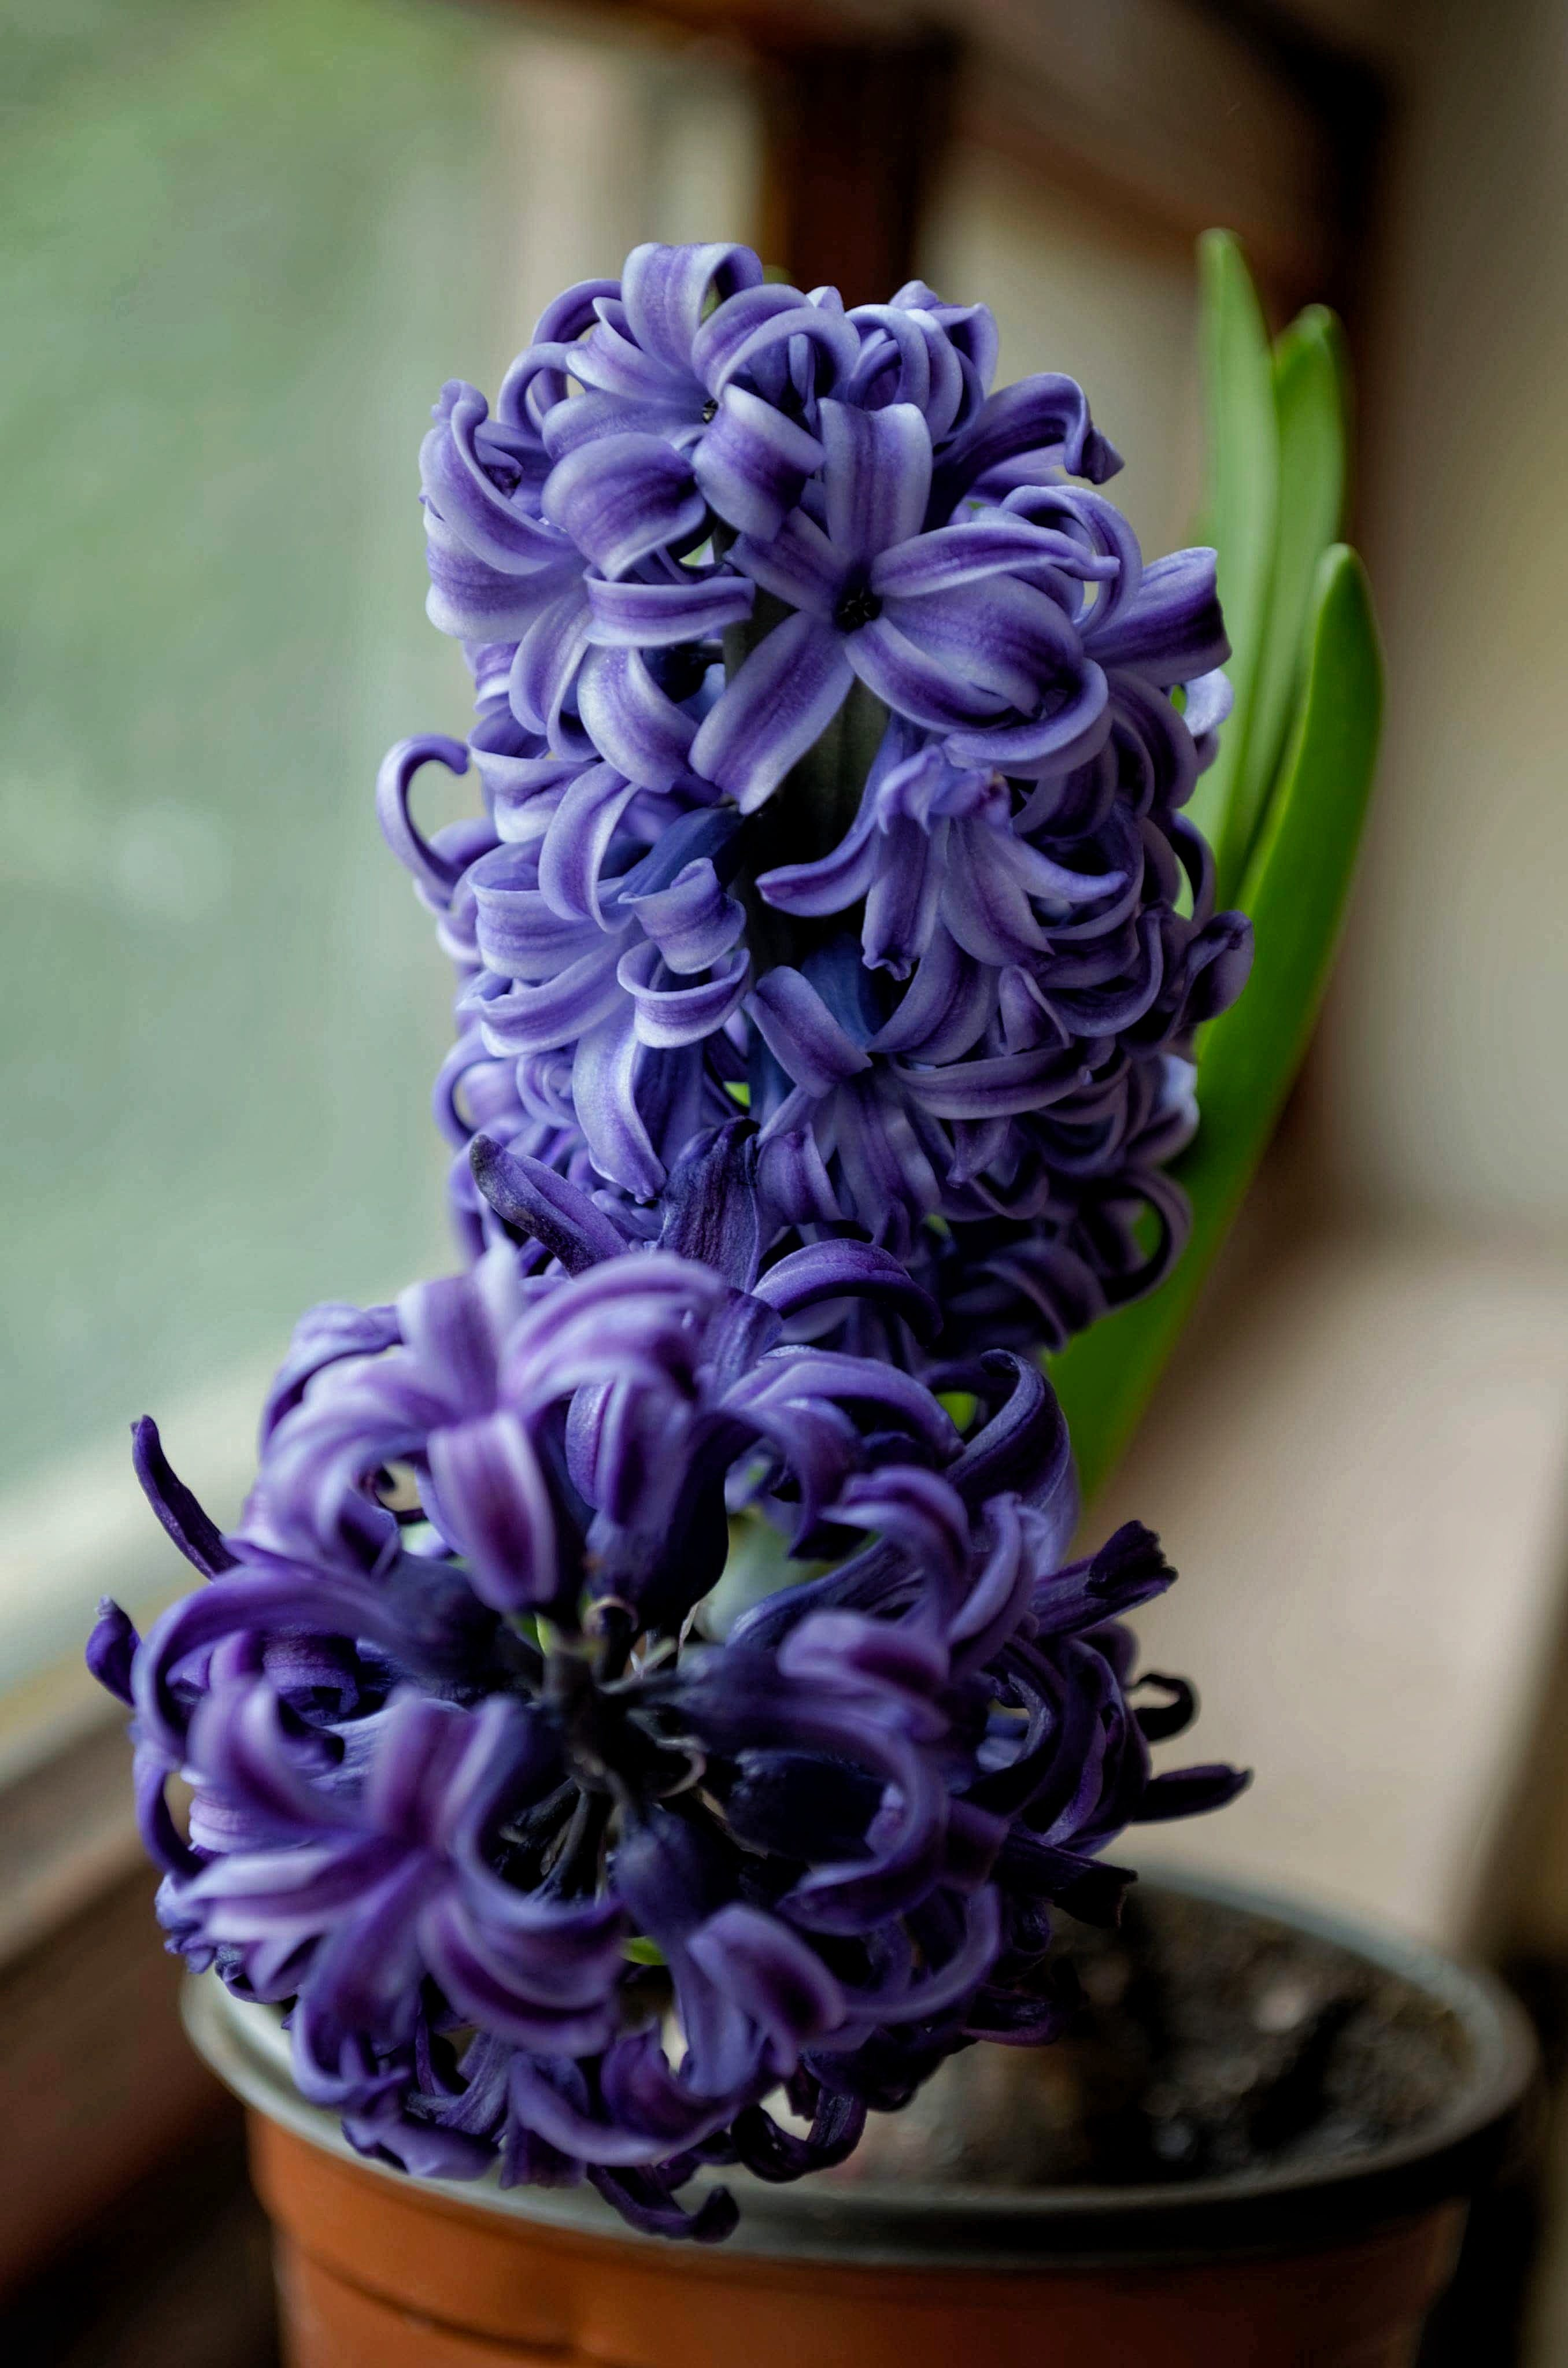 Selective Focus Photography of Purple Hyacinth Flower